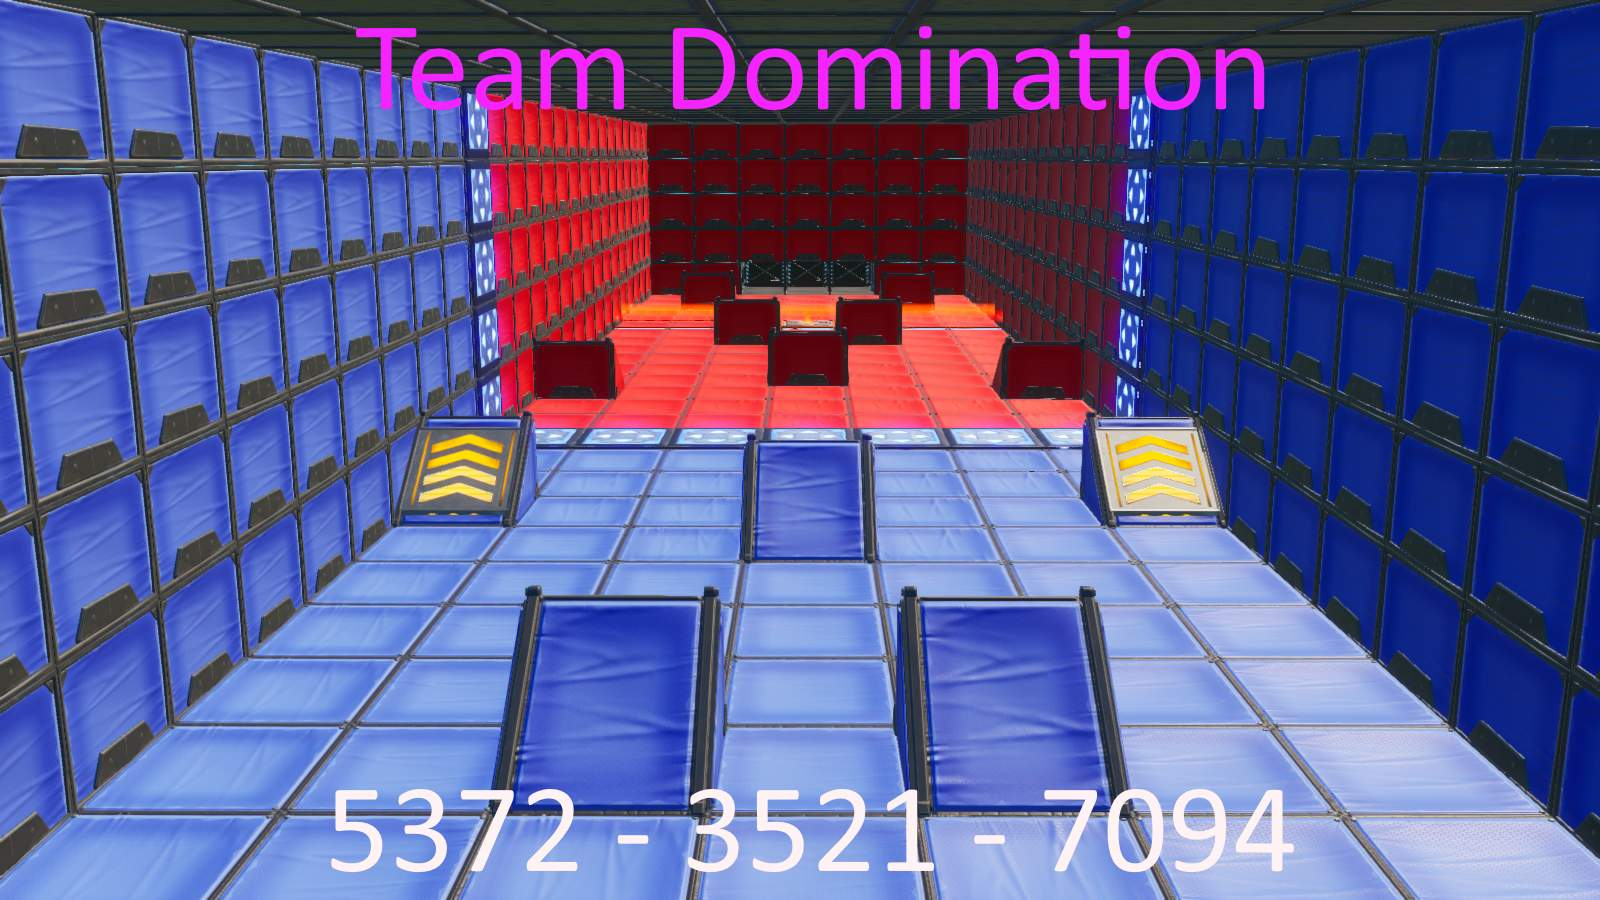 TEAM DOMINATION